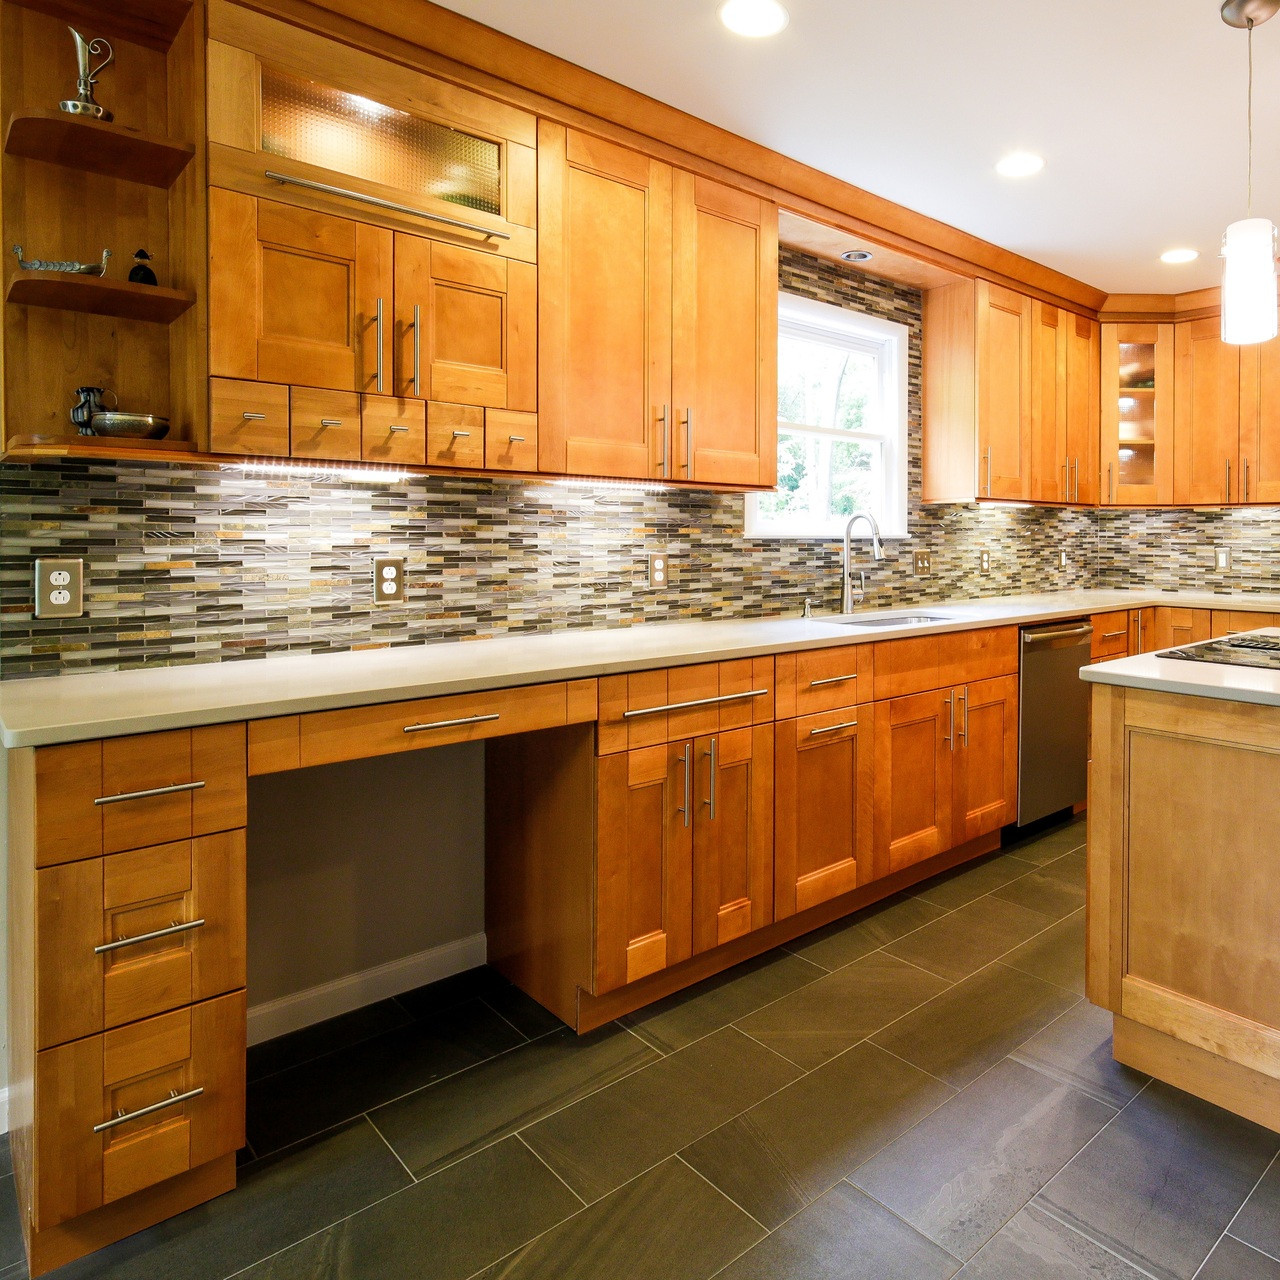 Kitchen Cabinets Birmingham Al Kitchen Cabinets Birmingham Al Rts Construction Home Remodeling